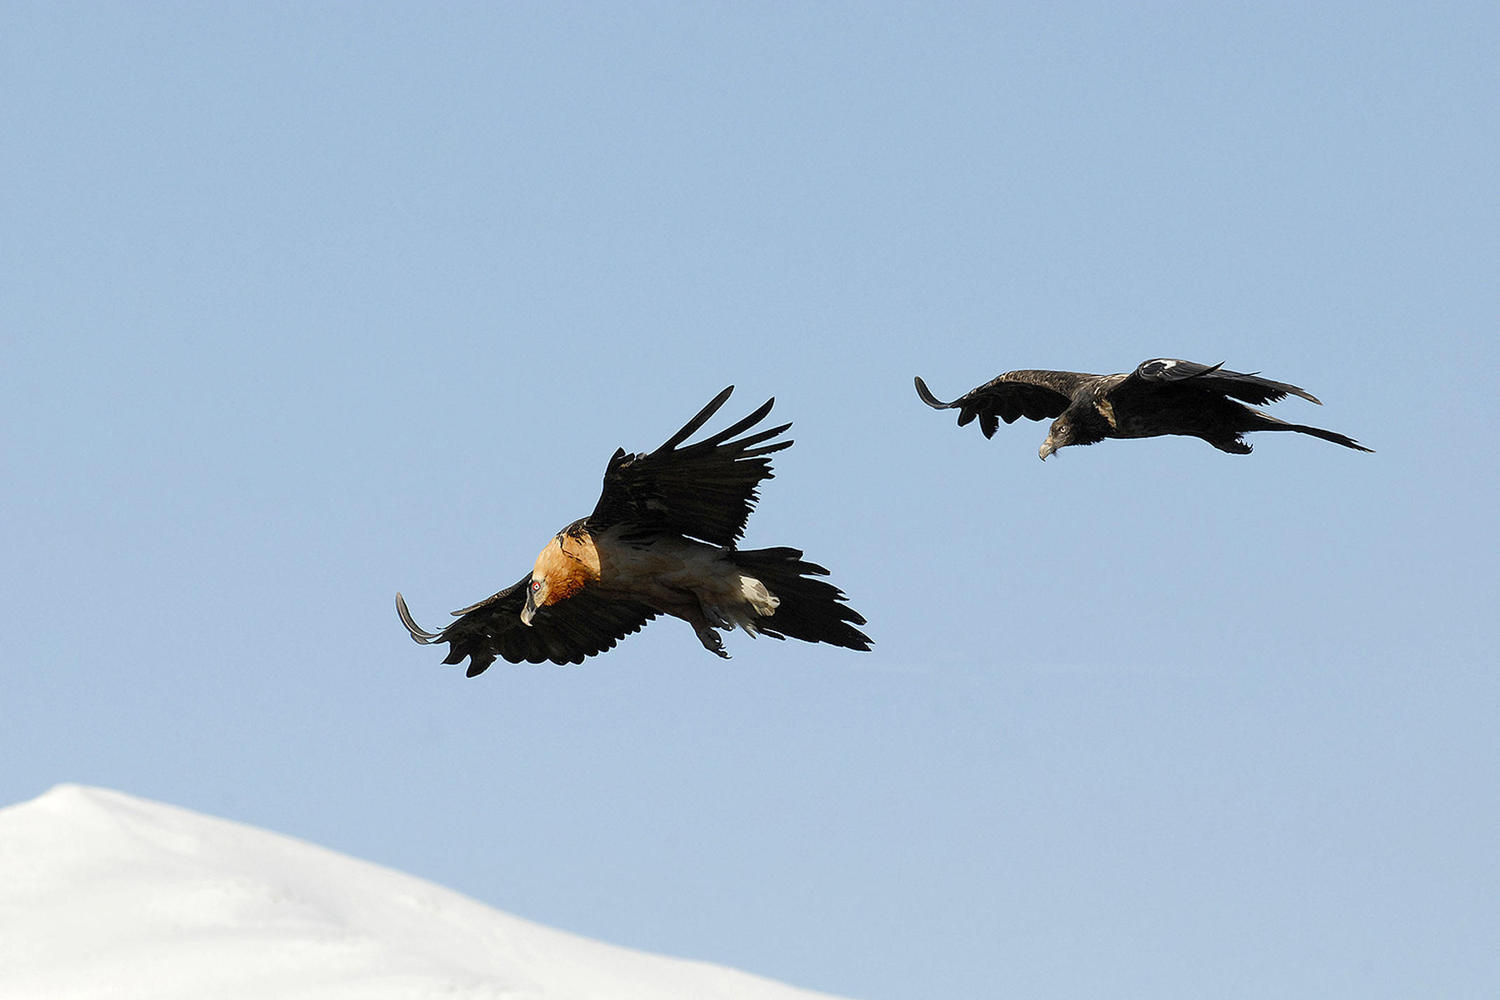 Bearded vultures flying above the snowy peaks